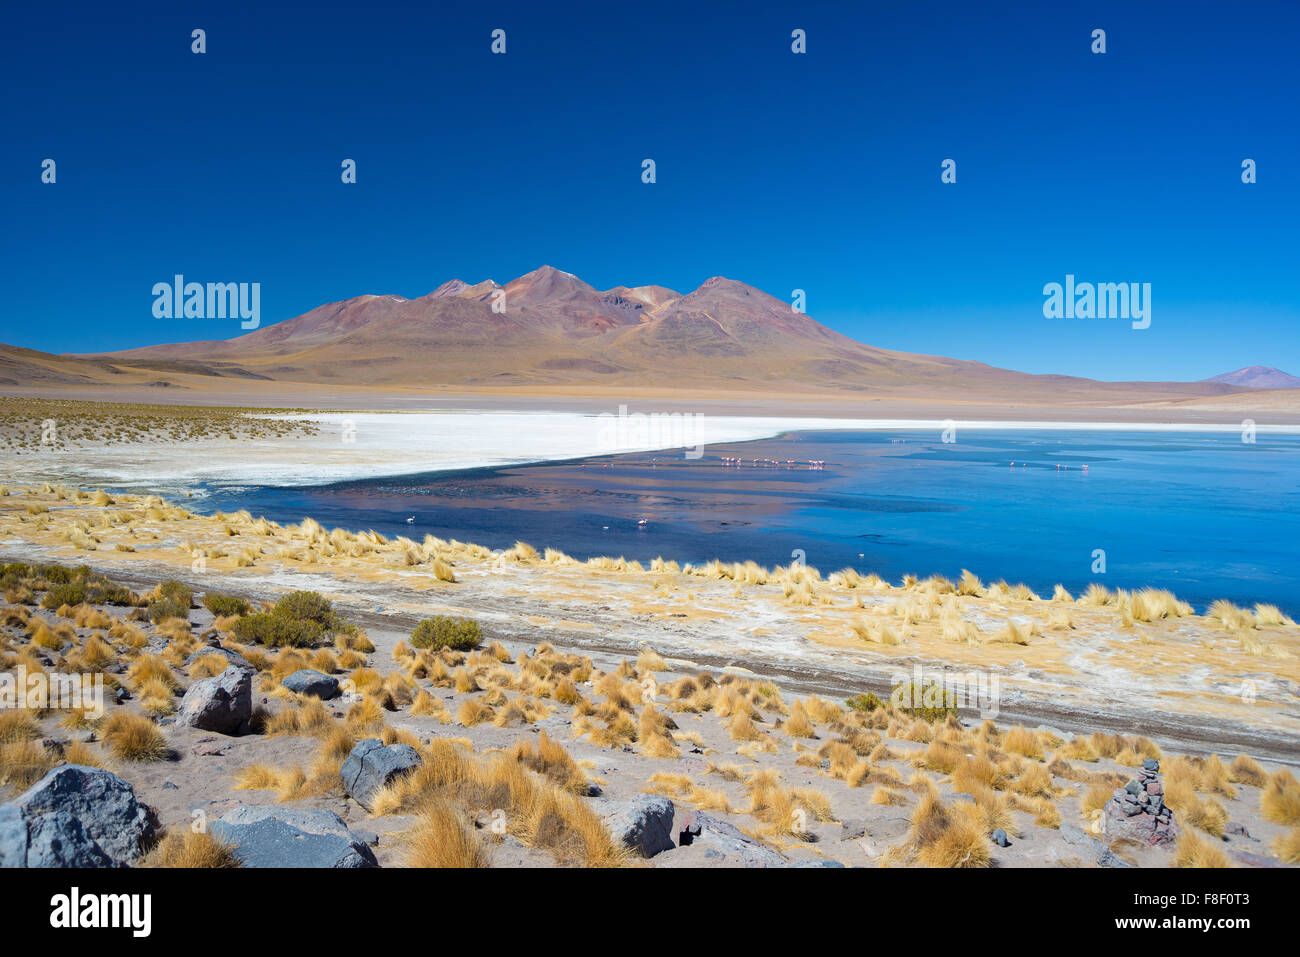 Wide angle view of 'Laguna Honda', a frozen salt lake with flamingos on the way to the famous Uyuni Salt - Stock Image